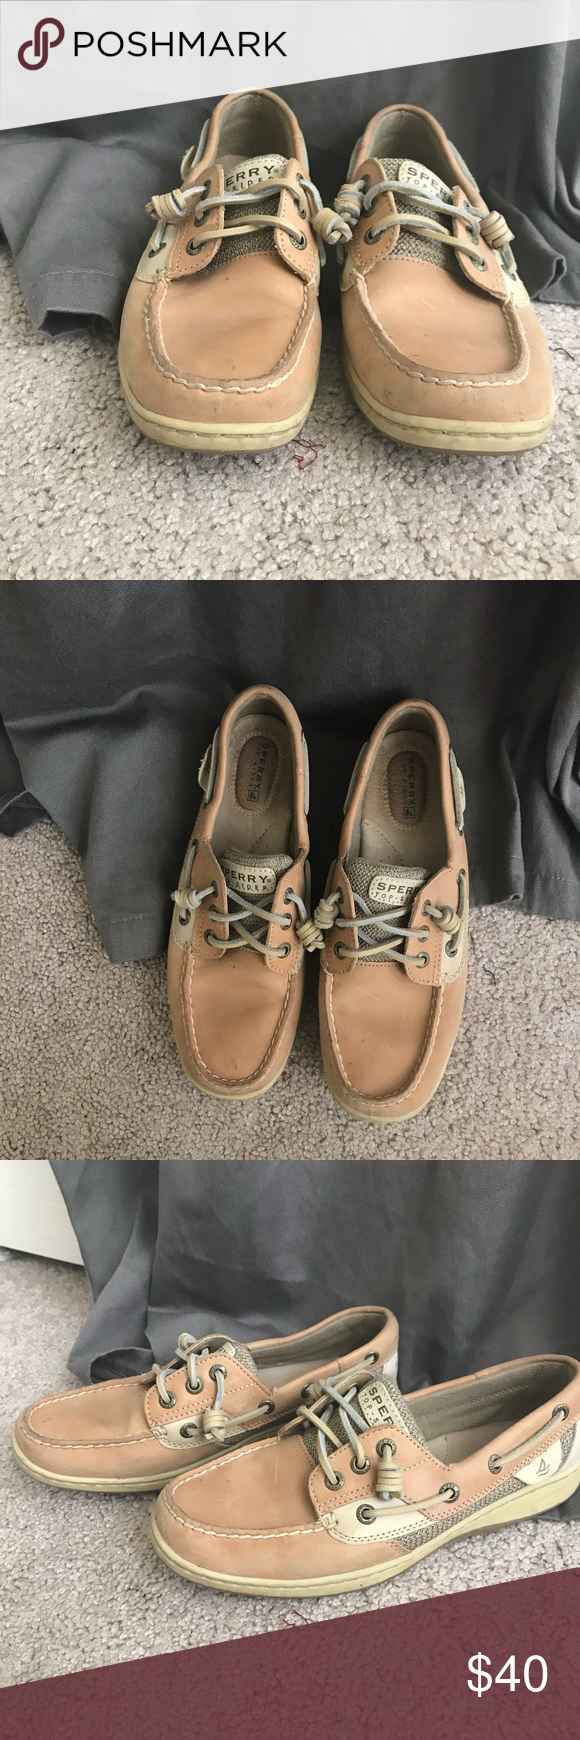 Classic Sperry Topsiders Adorable Sperrys. Barely been worn! Size 7. Open to trades and offers! Sperry Top-Sider Shoes Flats & Loafers